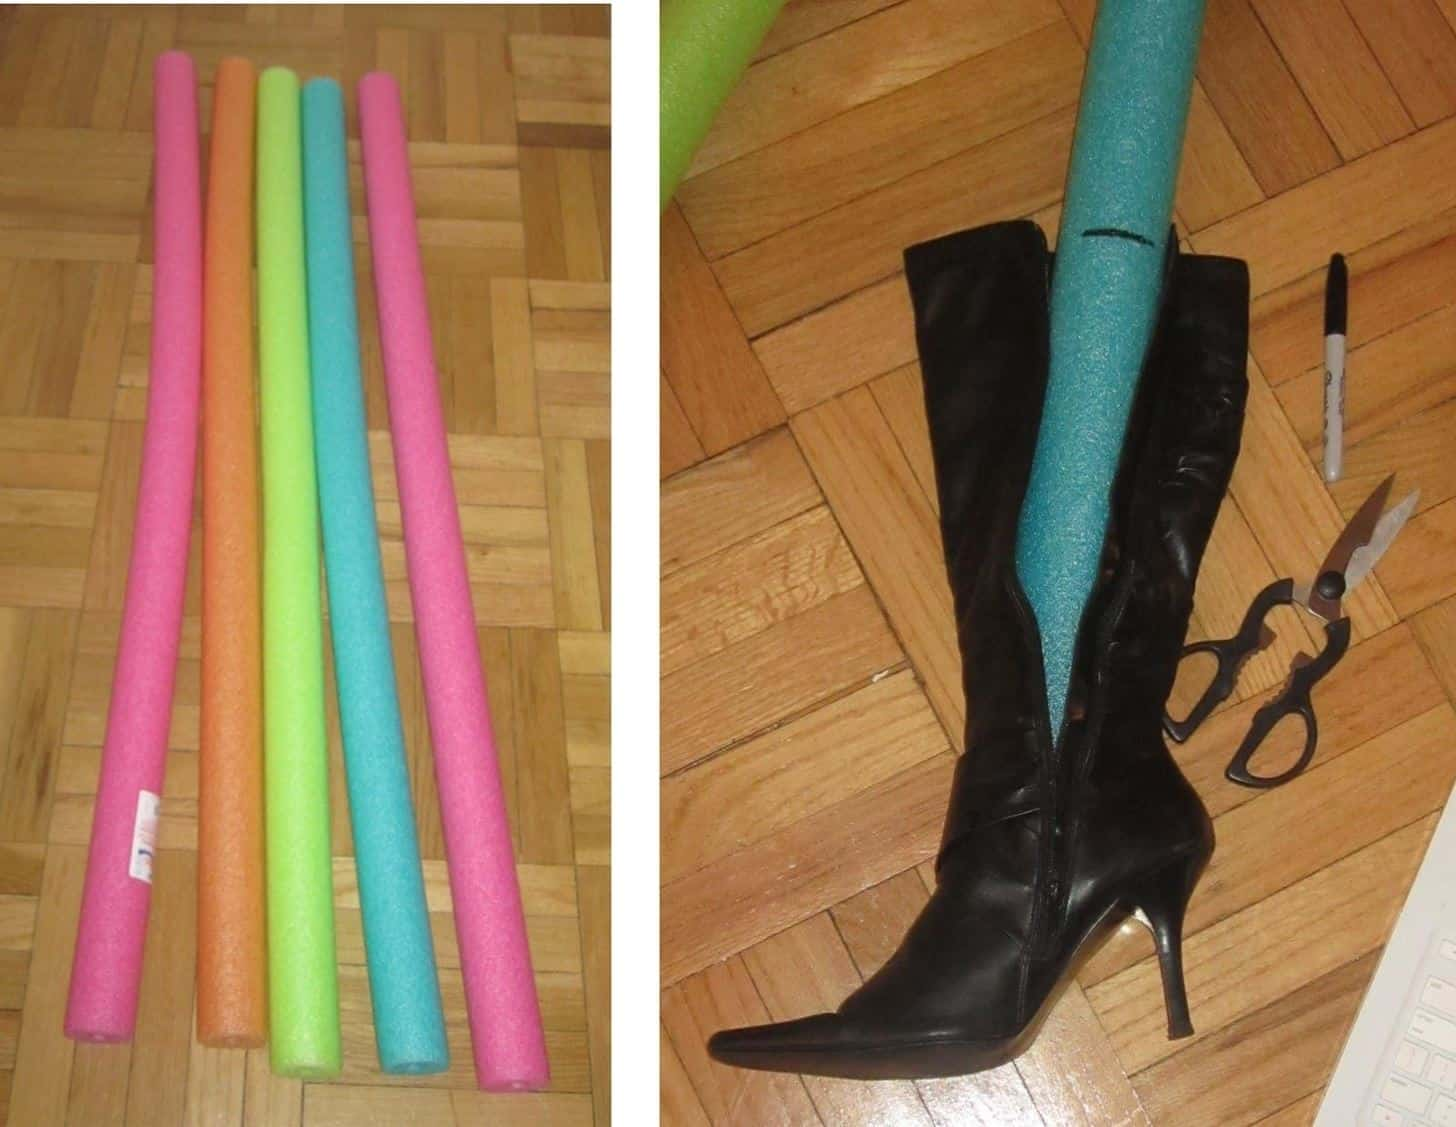 10. Pool Noodles To Keep Tall Boots Standing